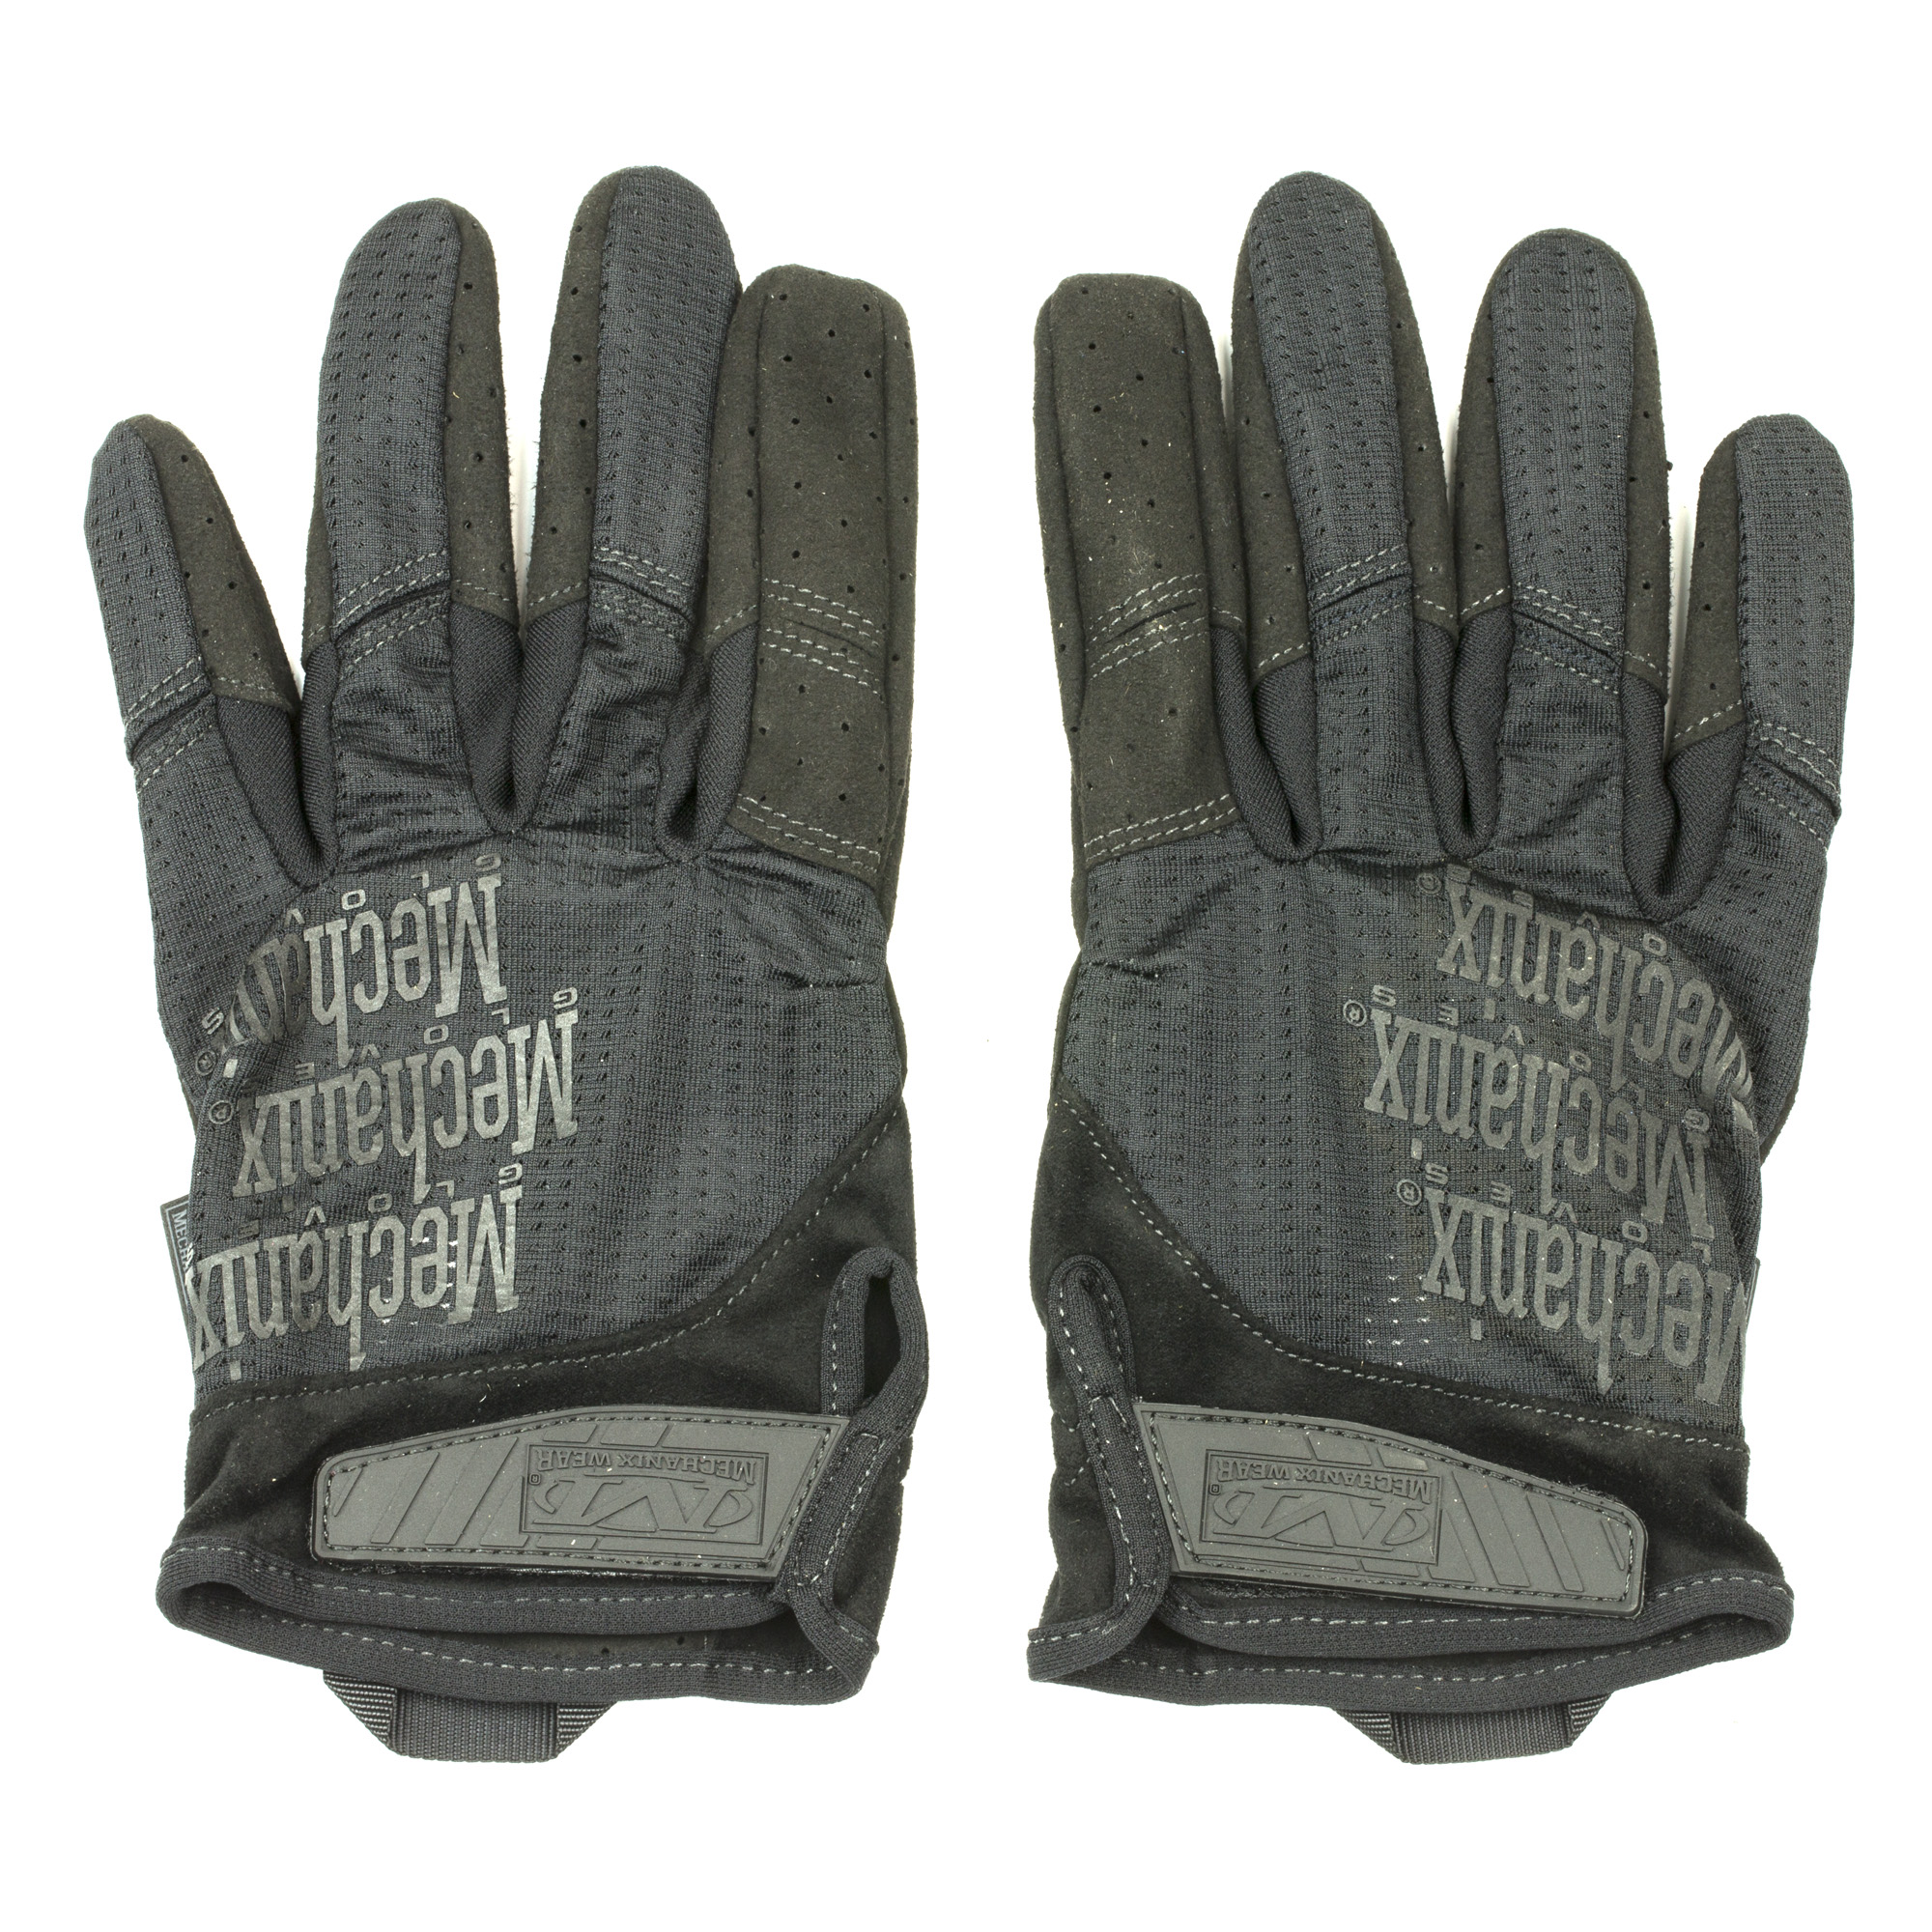 Beat the heat wherever your mission takes you. Extremely hot or humid conditions can cause sweaty hands leading to the loss of valuable control in the field. Specialty Vent Covert shooting gloves provide evaporate cooling when the heat is on with a fully ventilated design. Breathable mesh combines with a perforated 0.6mm palm to allow cool air in and circulate throughout the glove. Specialty Vent shooting gloves feature perforated trigger fingers and touchscreen capability so you're always connected in the field.